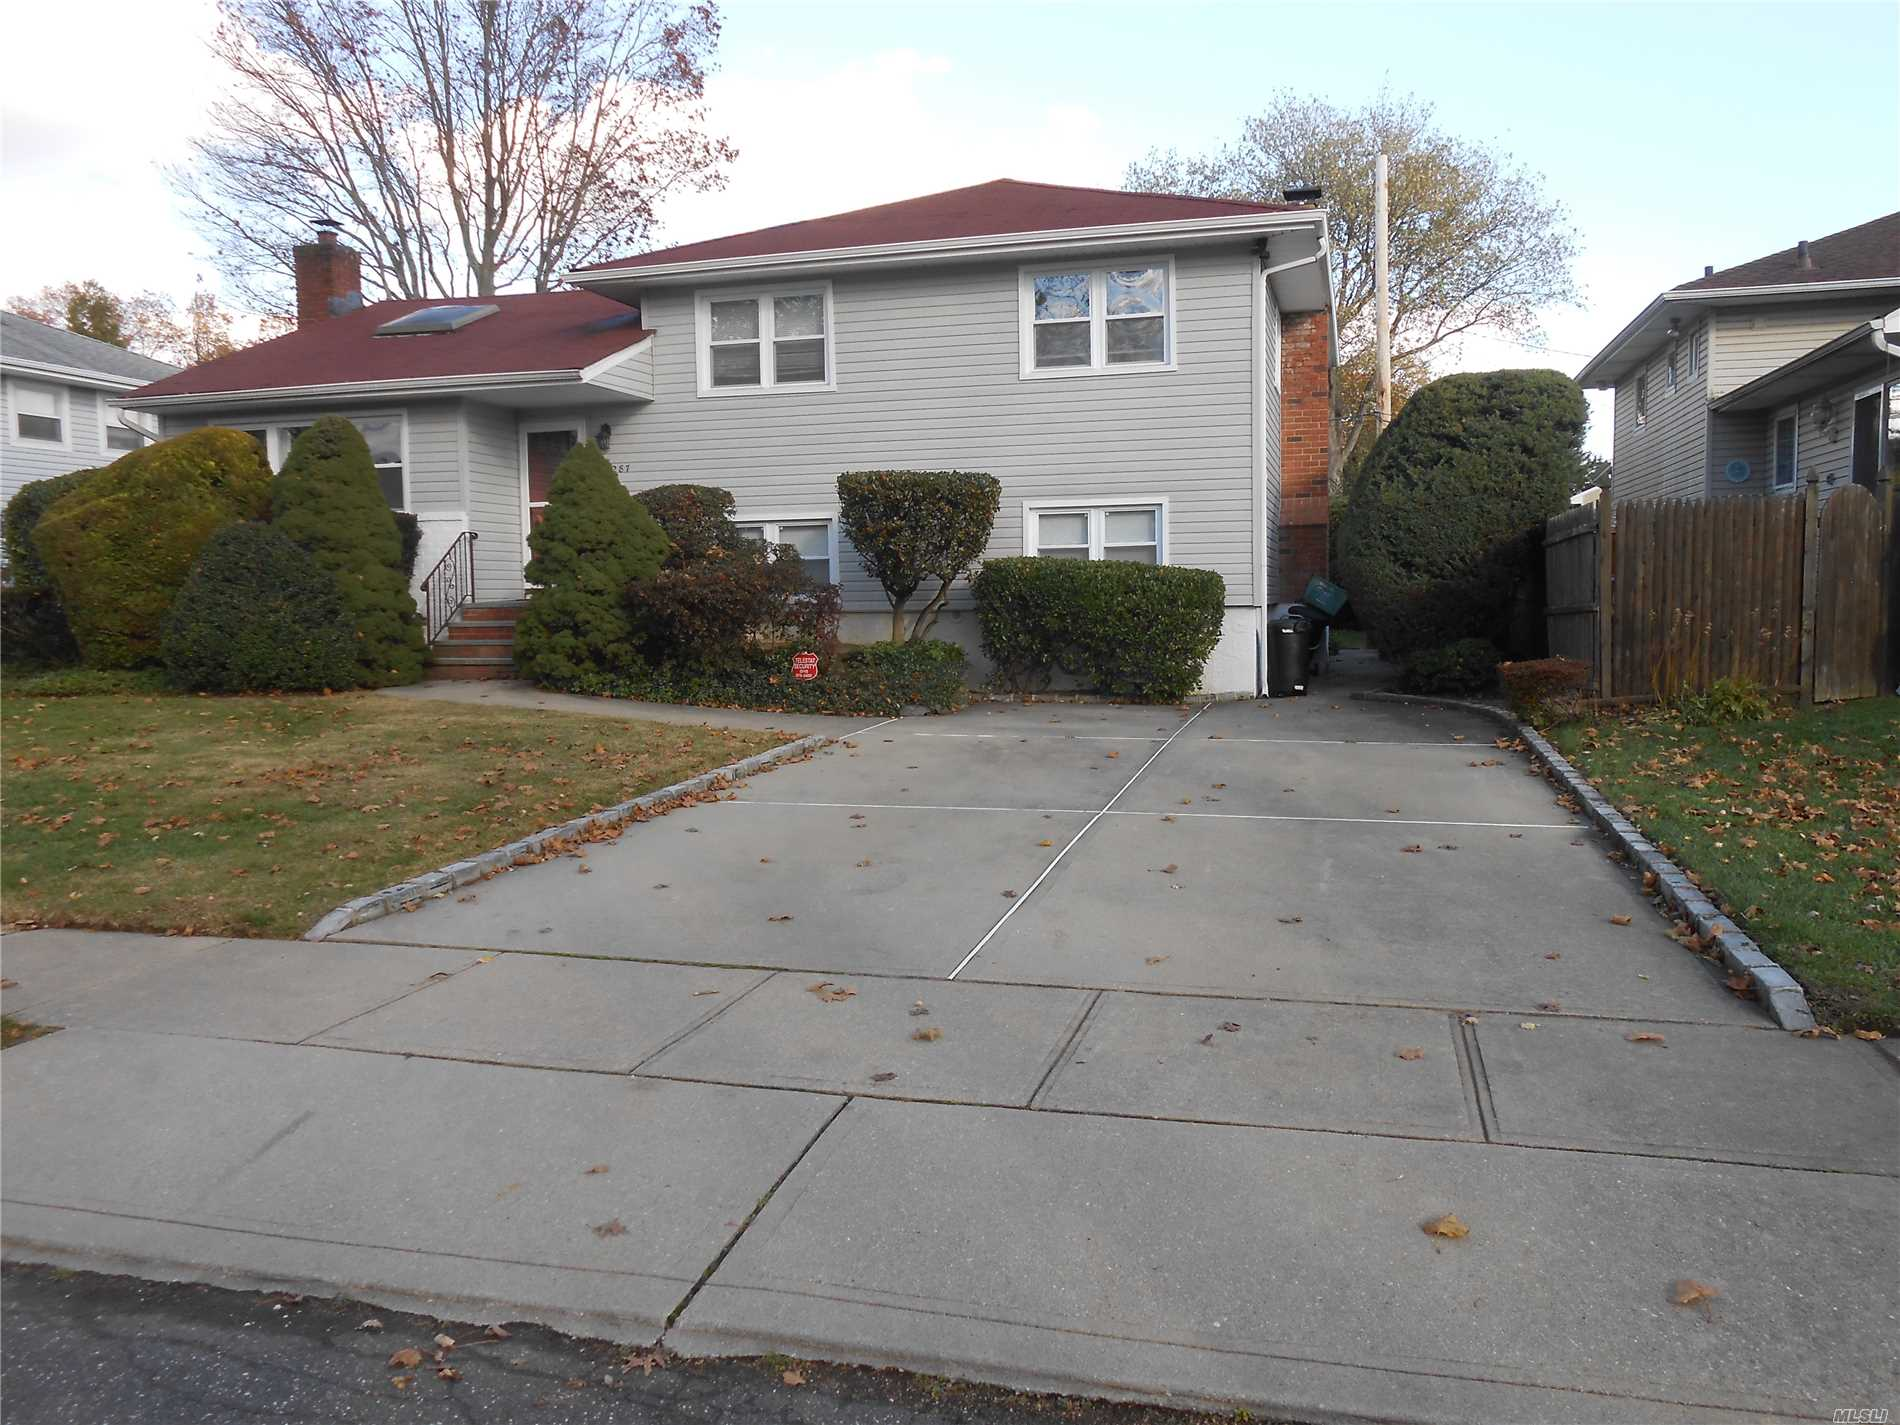 ...Plenty Of Updates And Award-Winning Schools!!! Recently Updated, Roof, Windows, Siding, Boiler, Hardwood Floors, Ss Appliances, Granite Counter Tops, New Master Bath Rm, Oversized Den/Family Room W/Wood Burning Fireplace, Alarm System,  Great Location!!! .... Tax Grievance Deduction Has Been Filed!!!  ....Come Make This House Your Next Home!!!